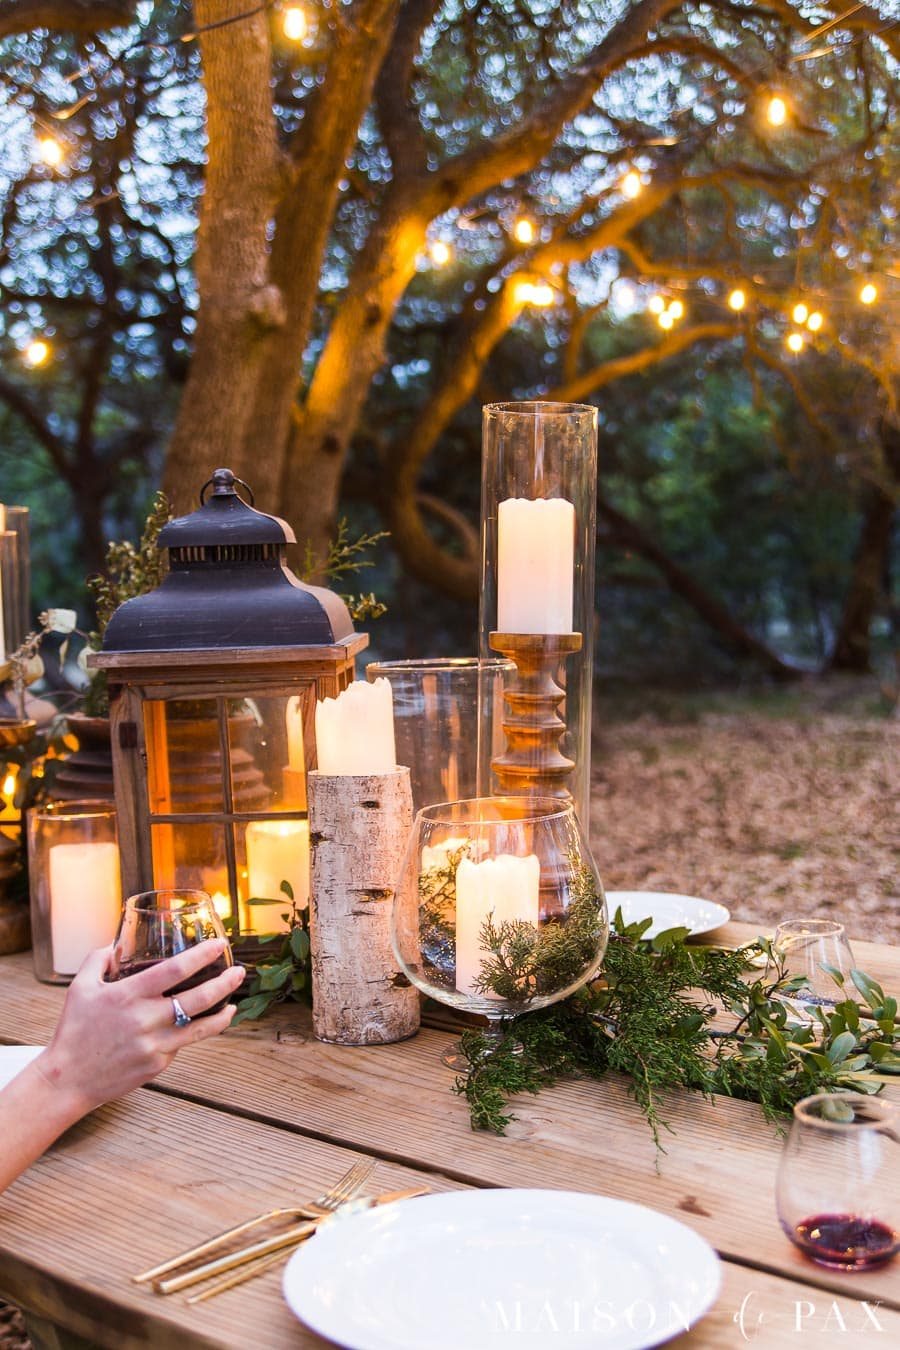 elegant candles and greenery on rustic outdoor dining table | Maison de Pax